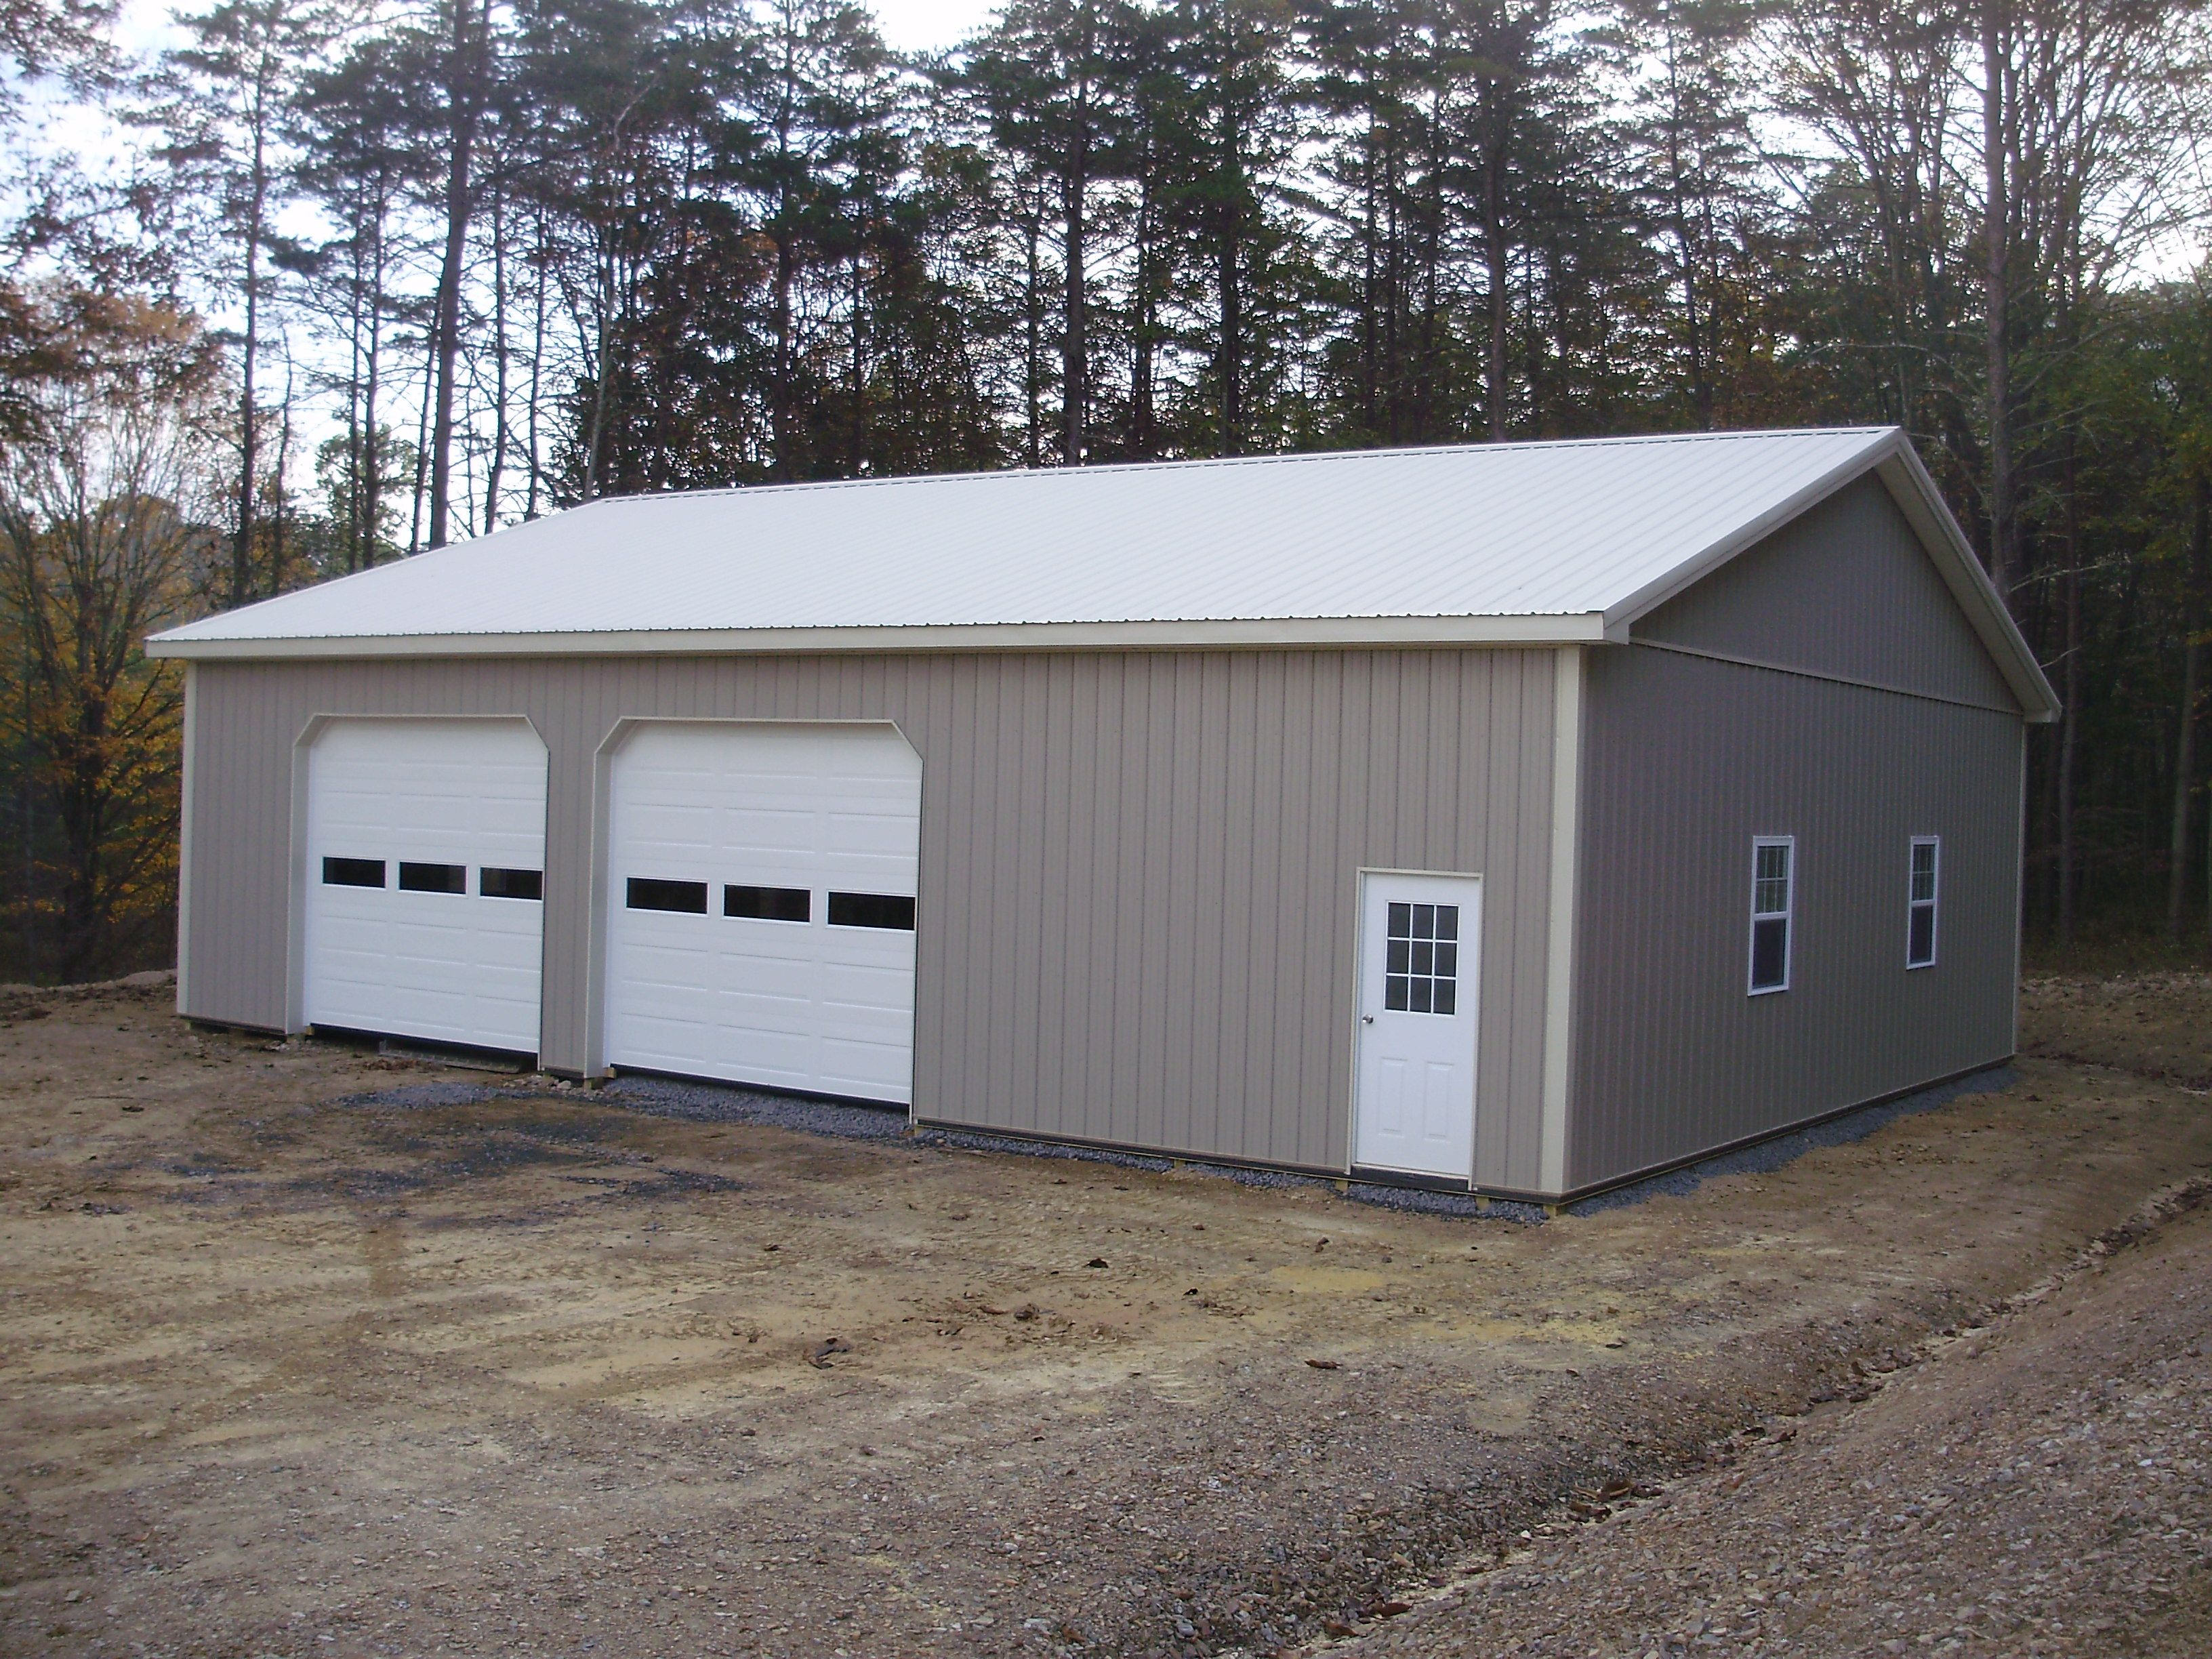 Building dimensions 40 w x 50 l x 12 h id 390 visit for 4 car pole barn